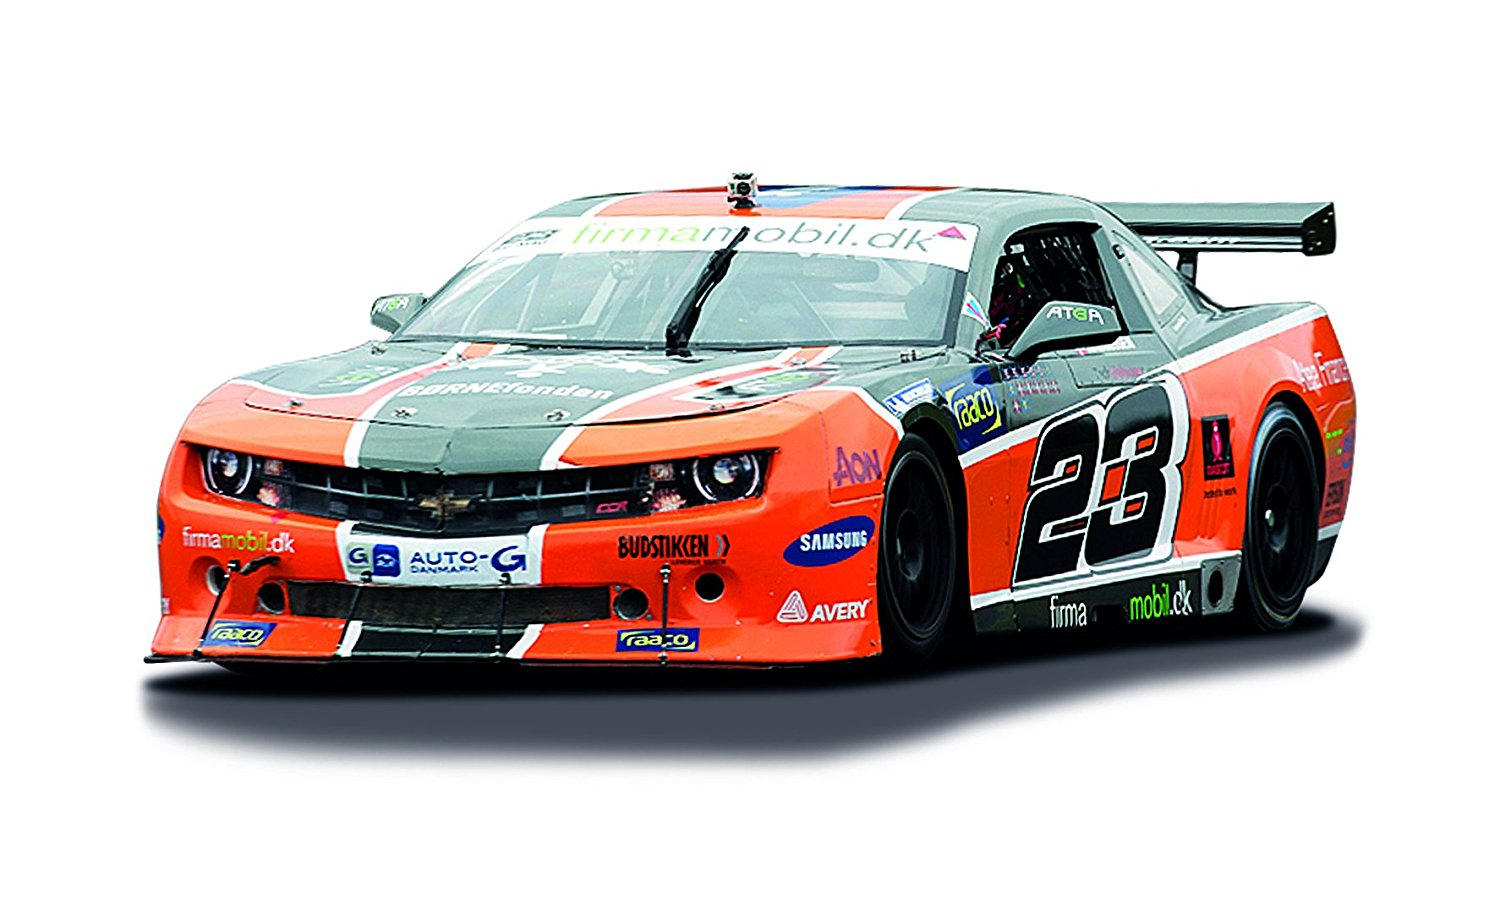 Scalextric Chevrolet Camero Series Slot Cars